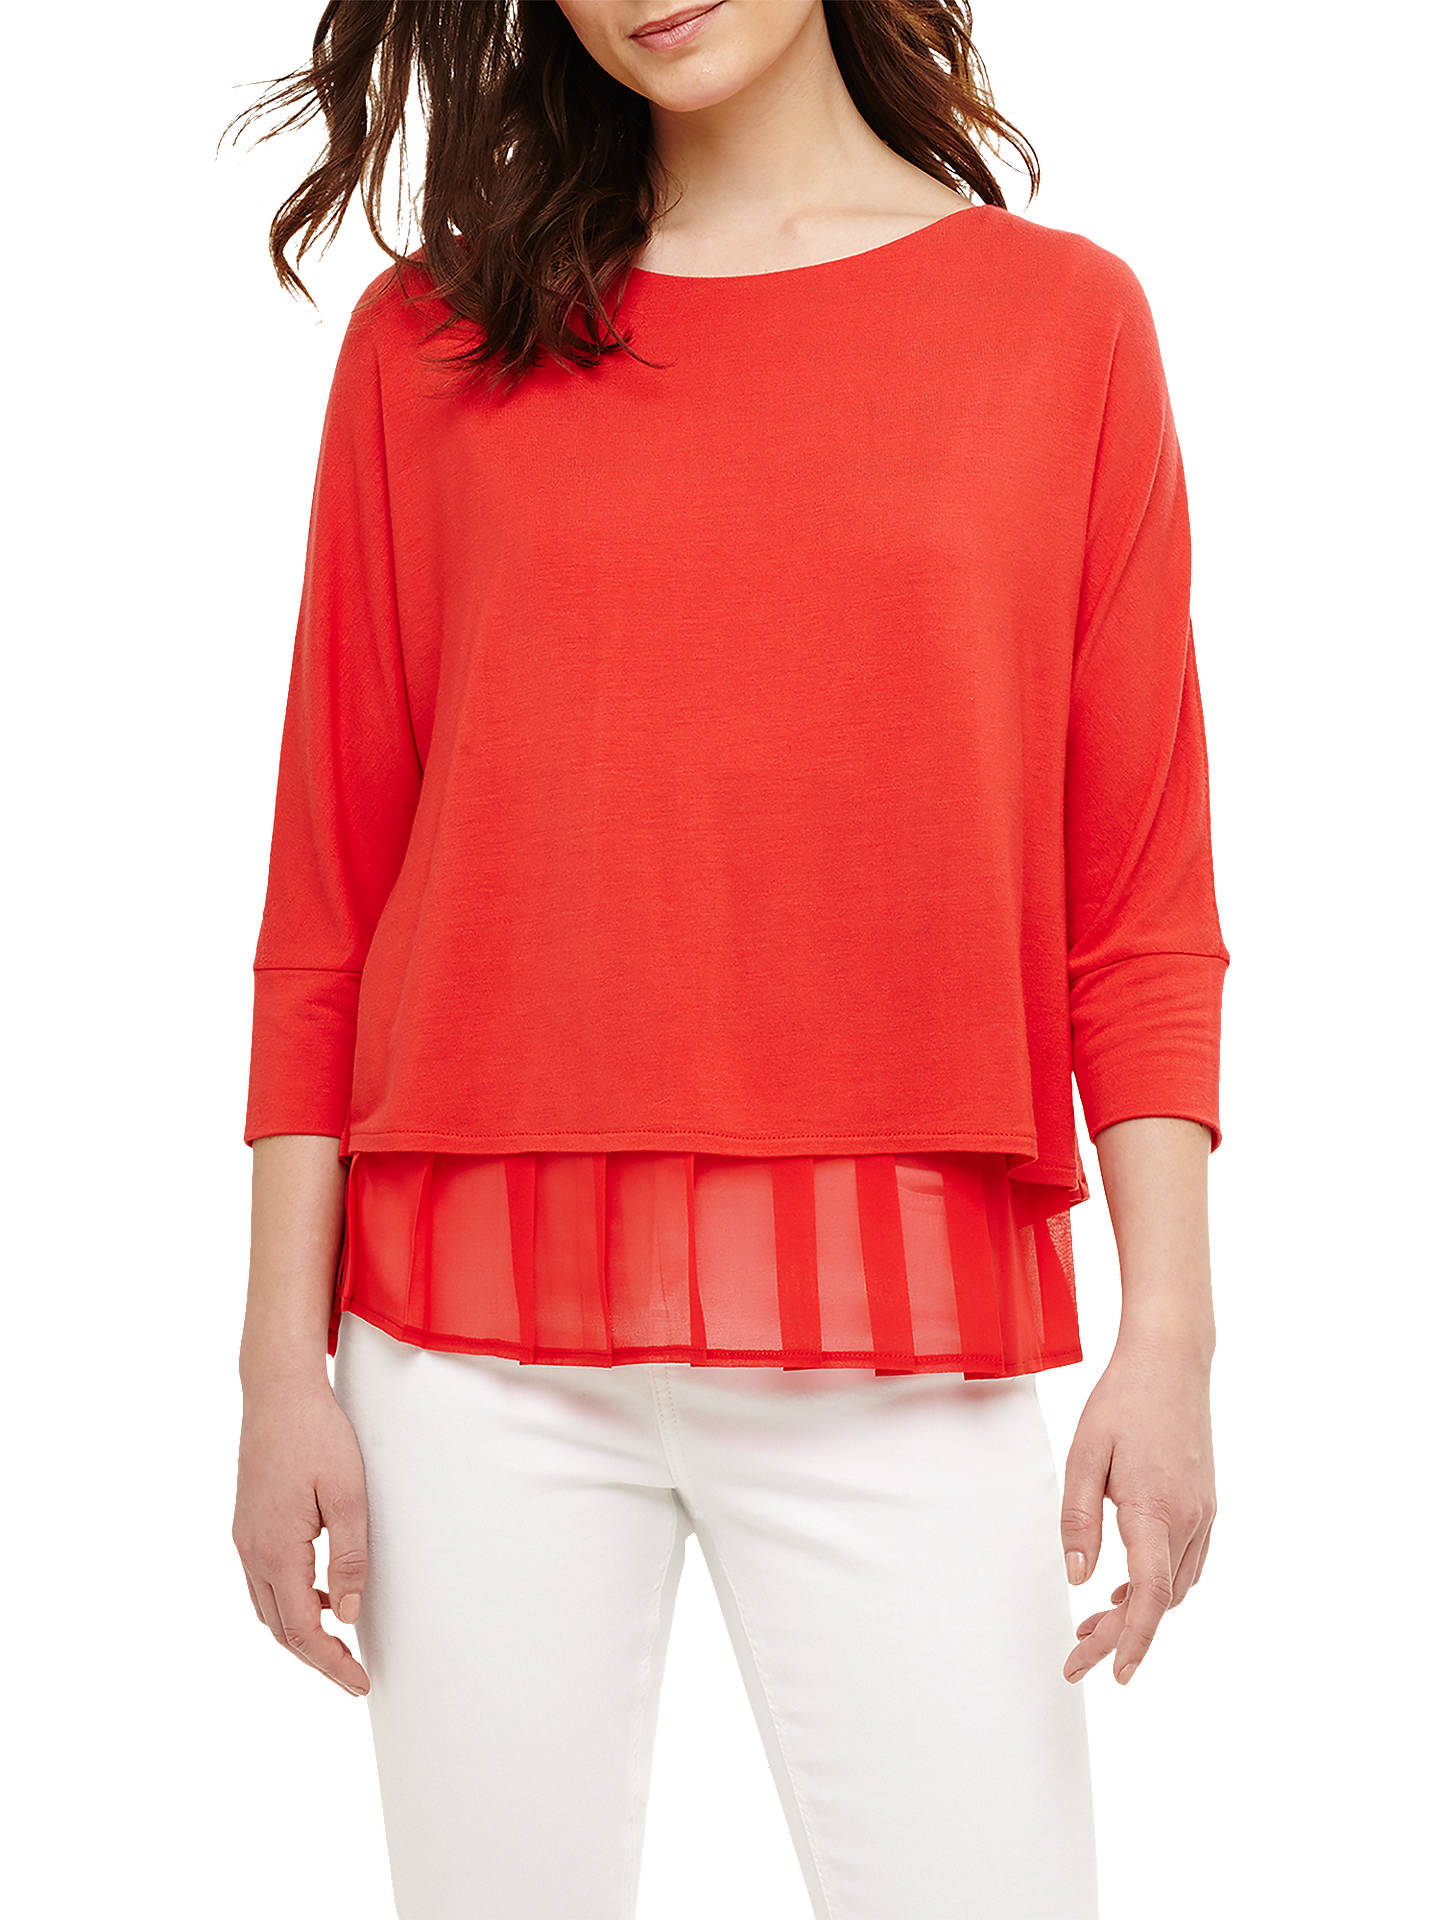 BuyPhase Eight Petunia Pleated Hem Top, Cherry, 12 Online at johnlewis.com